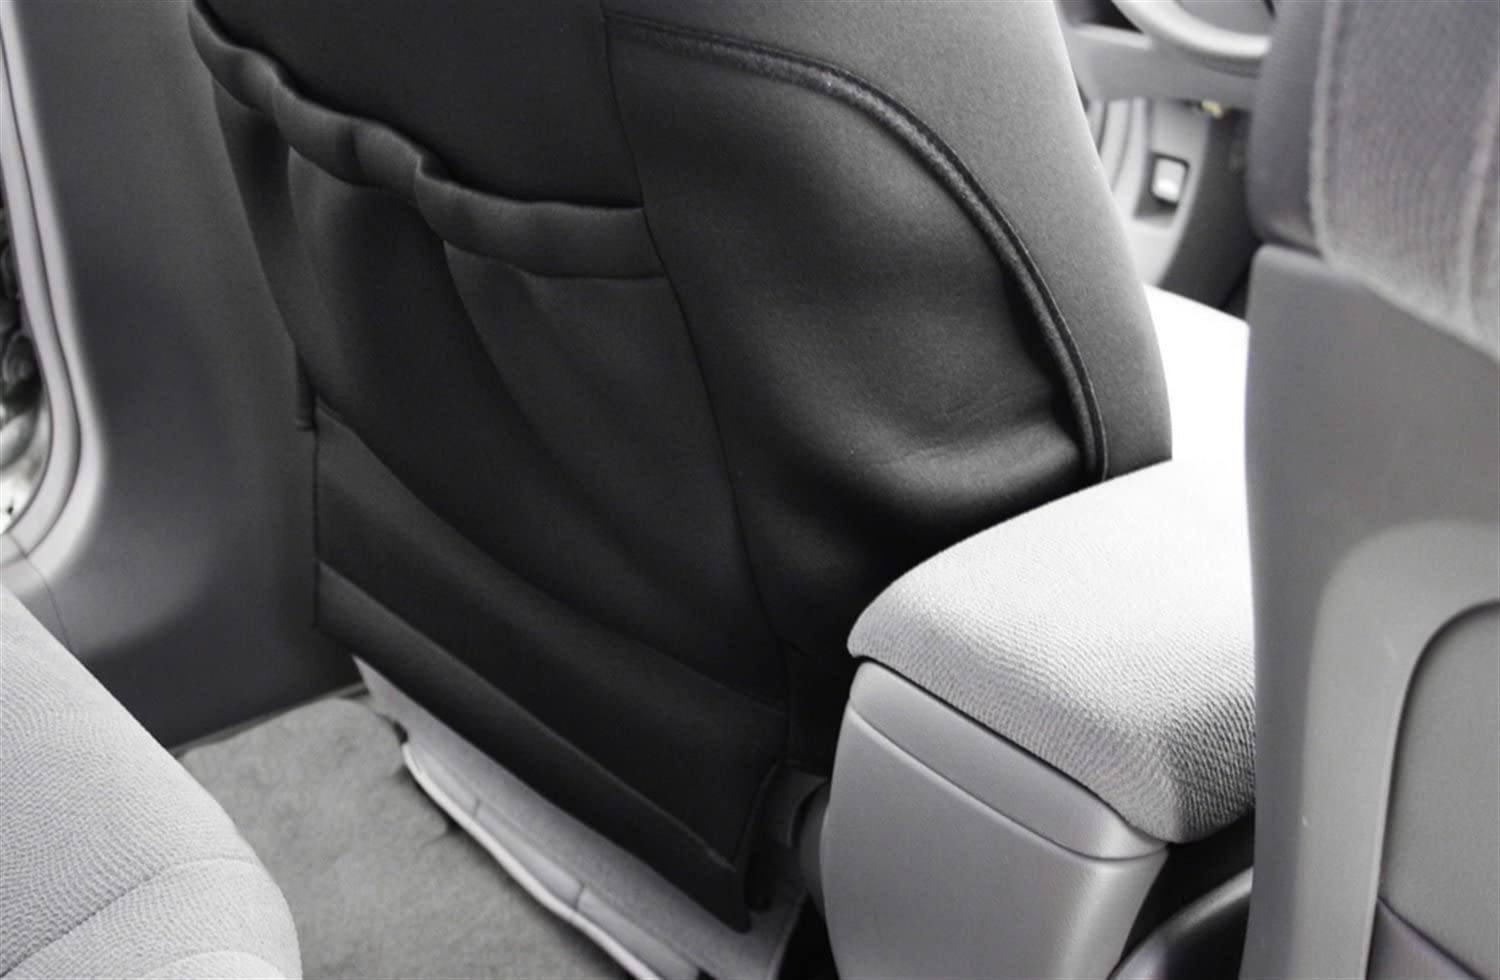 CalTrend Detroit Mall DG249-08NN Custom Cover Seat Limited price